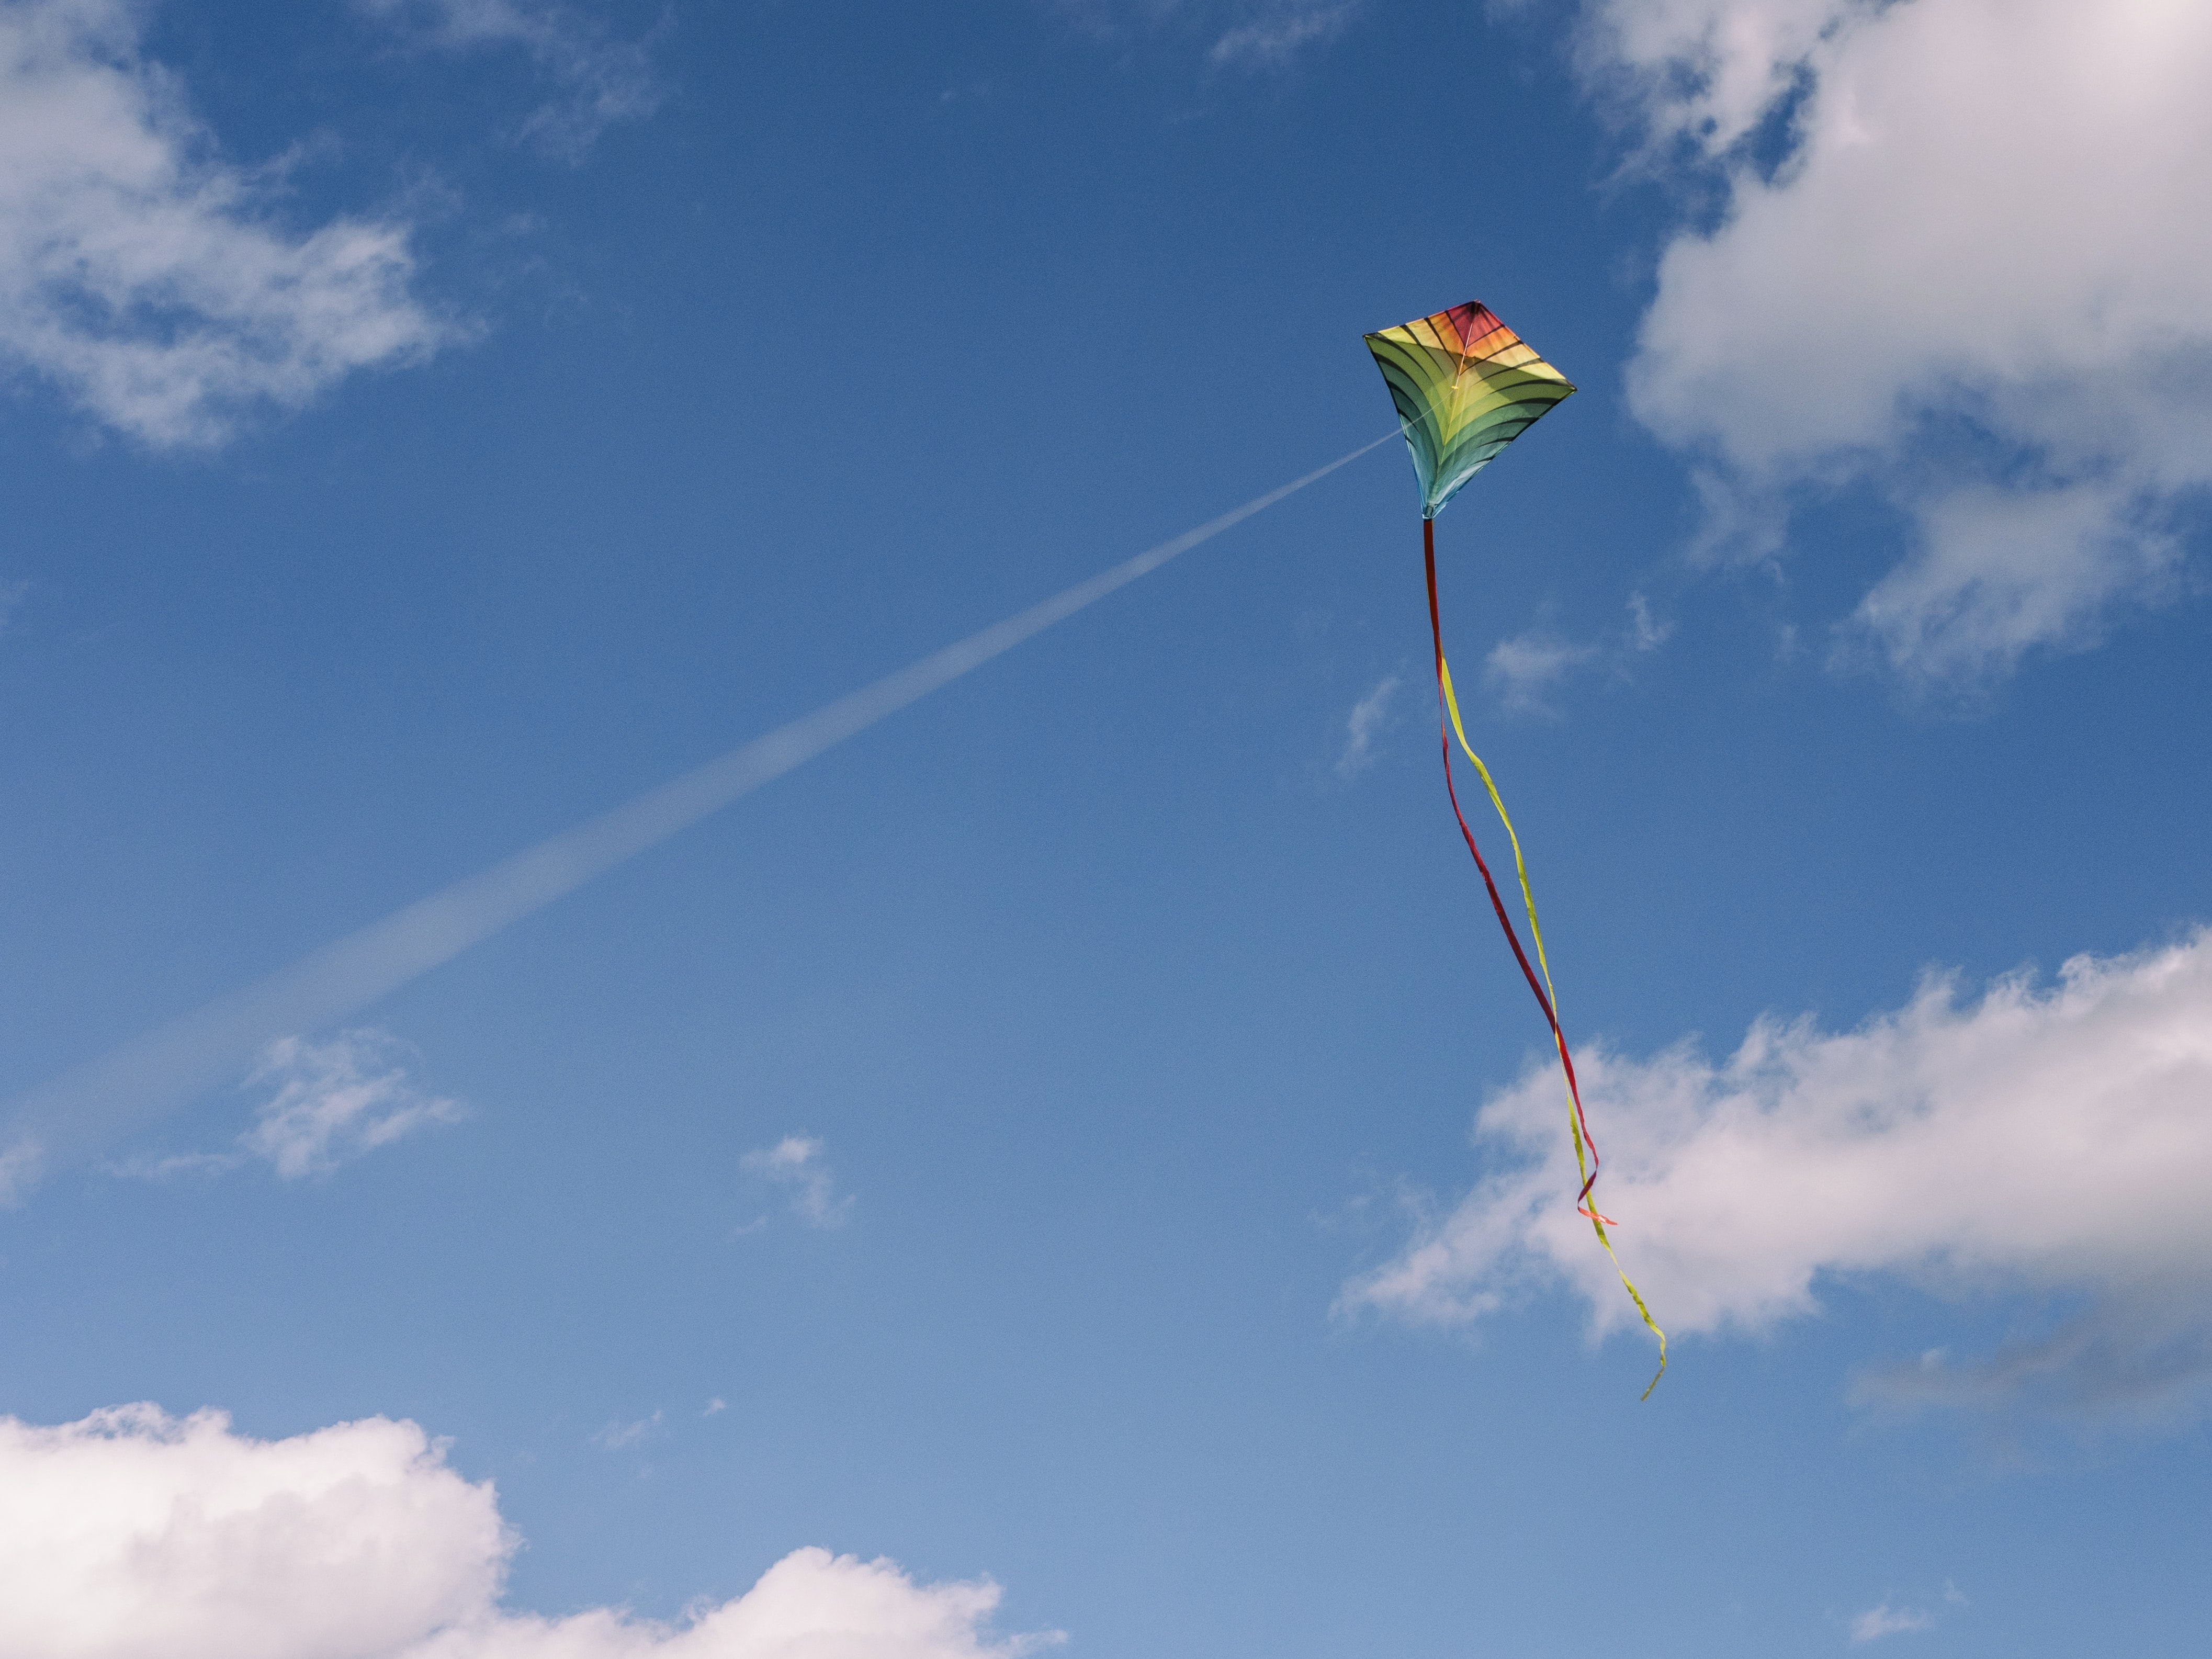 green and yellow kite on air